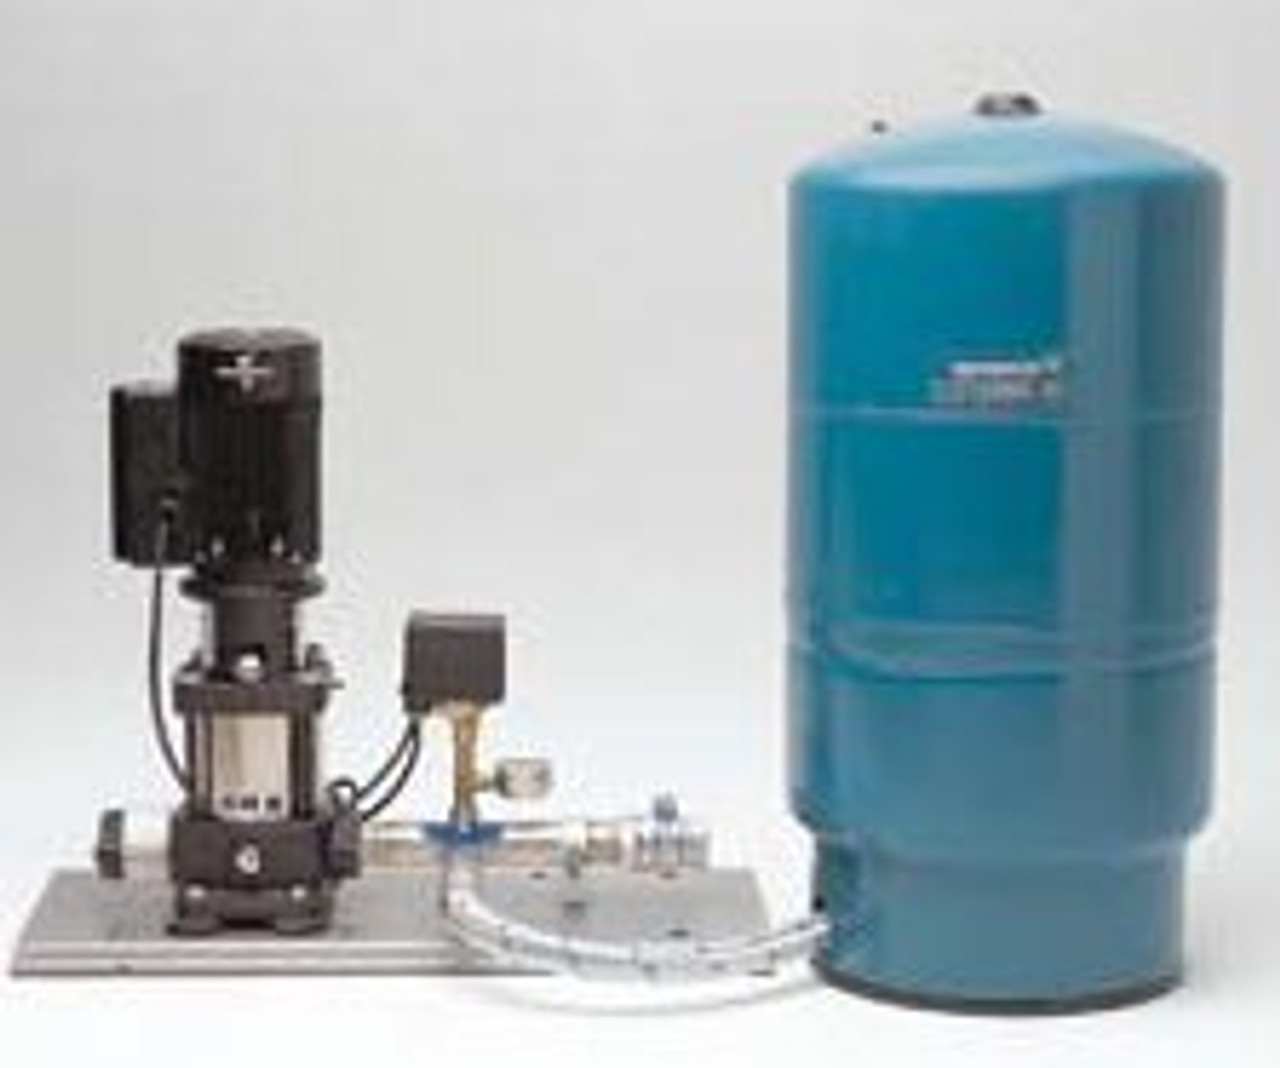 Grundfos CR3-10 Vertical Multistage Pump with Pressure Tank and Pressure Switch on a stainless steel base